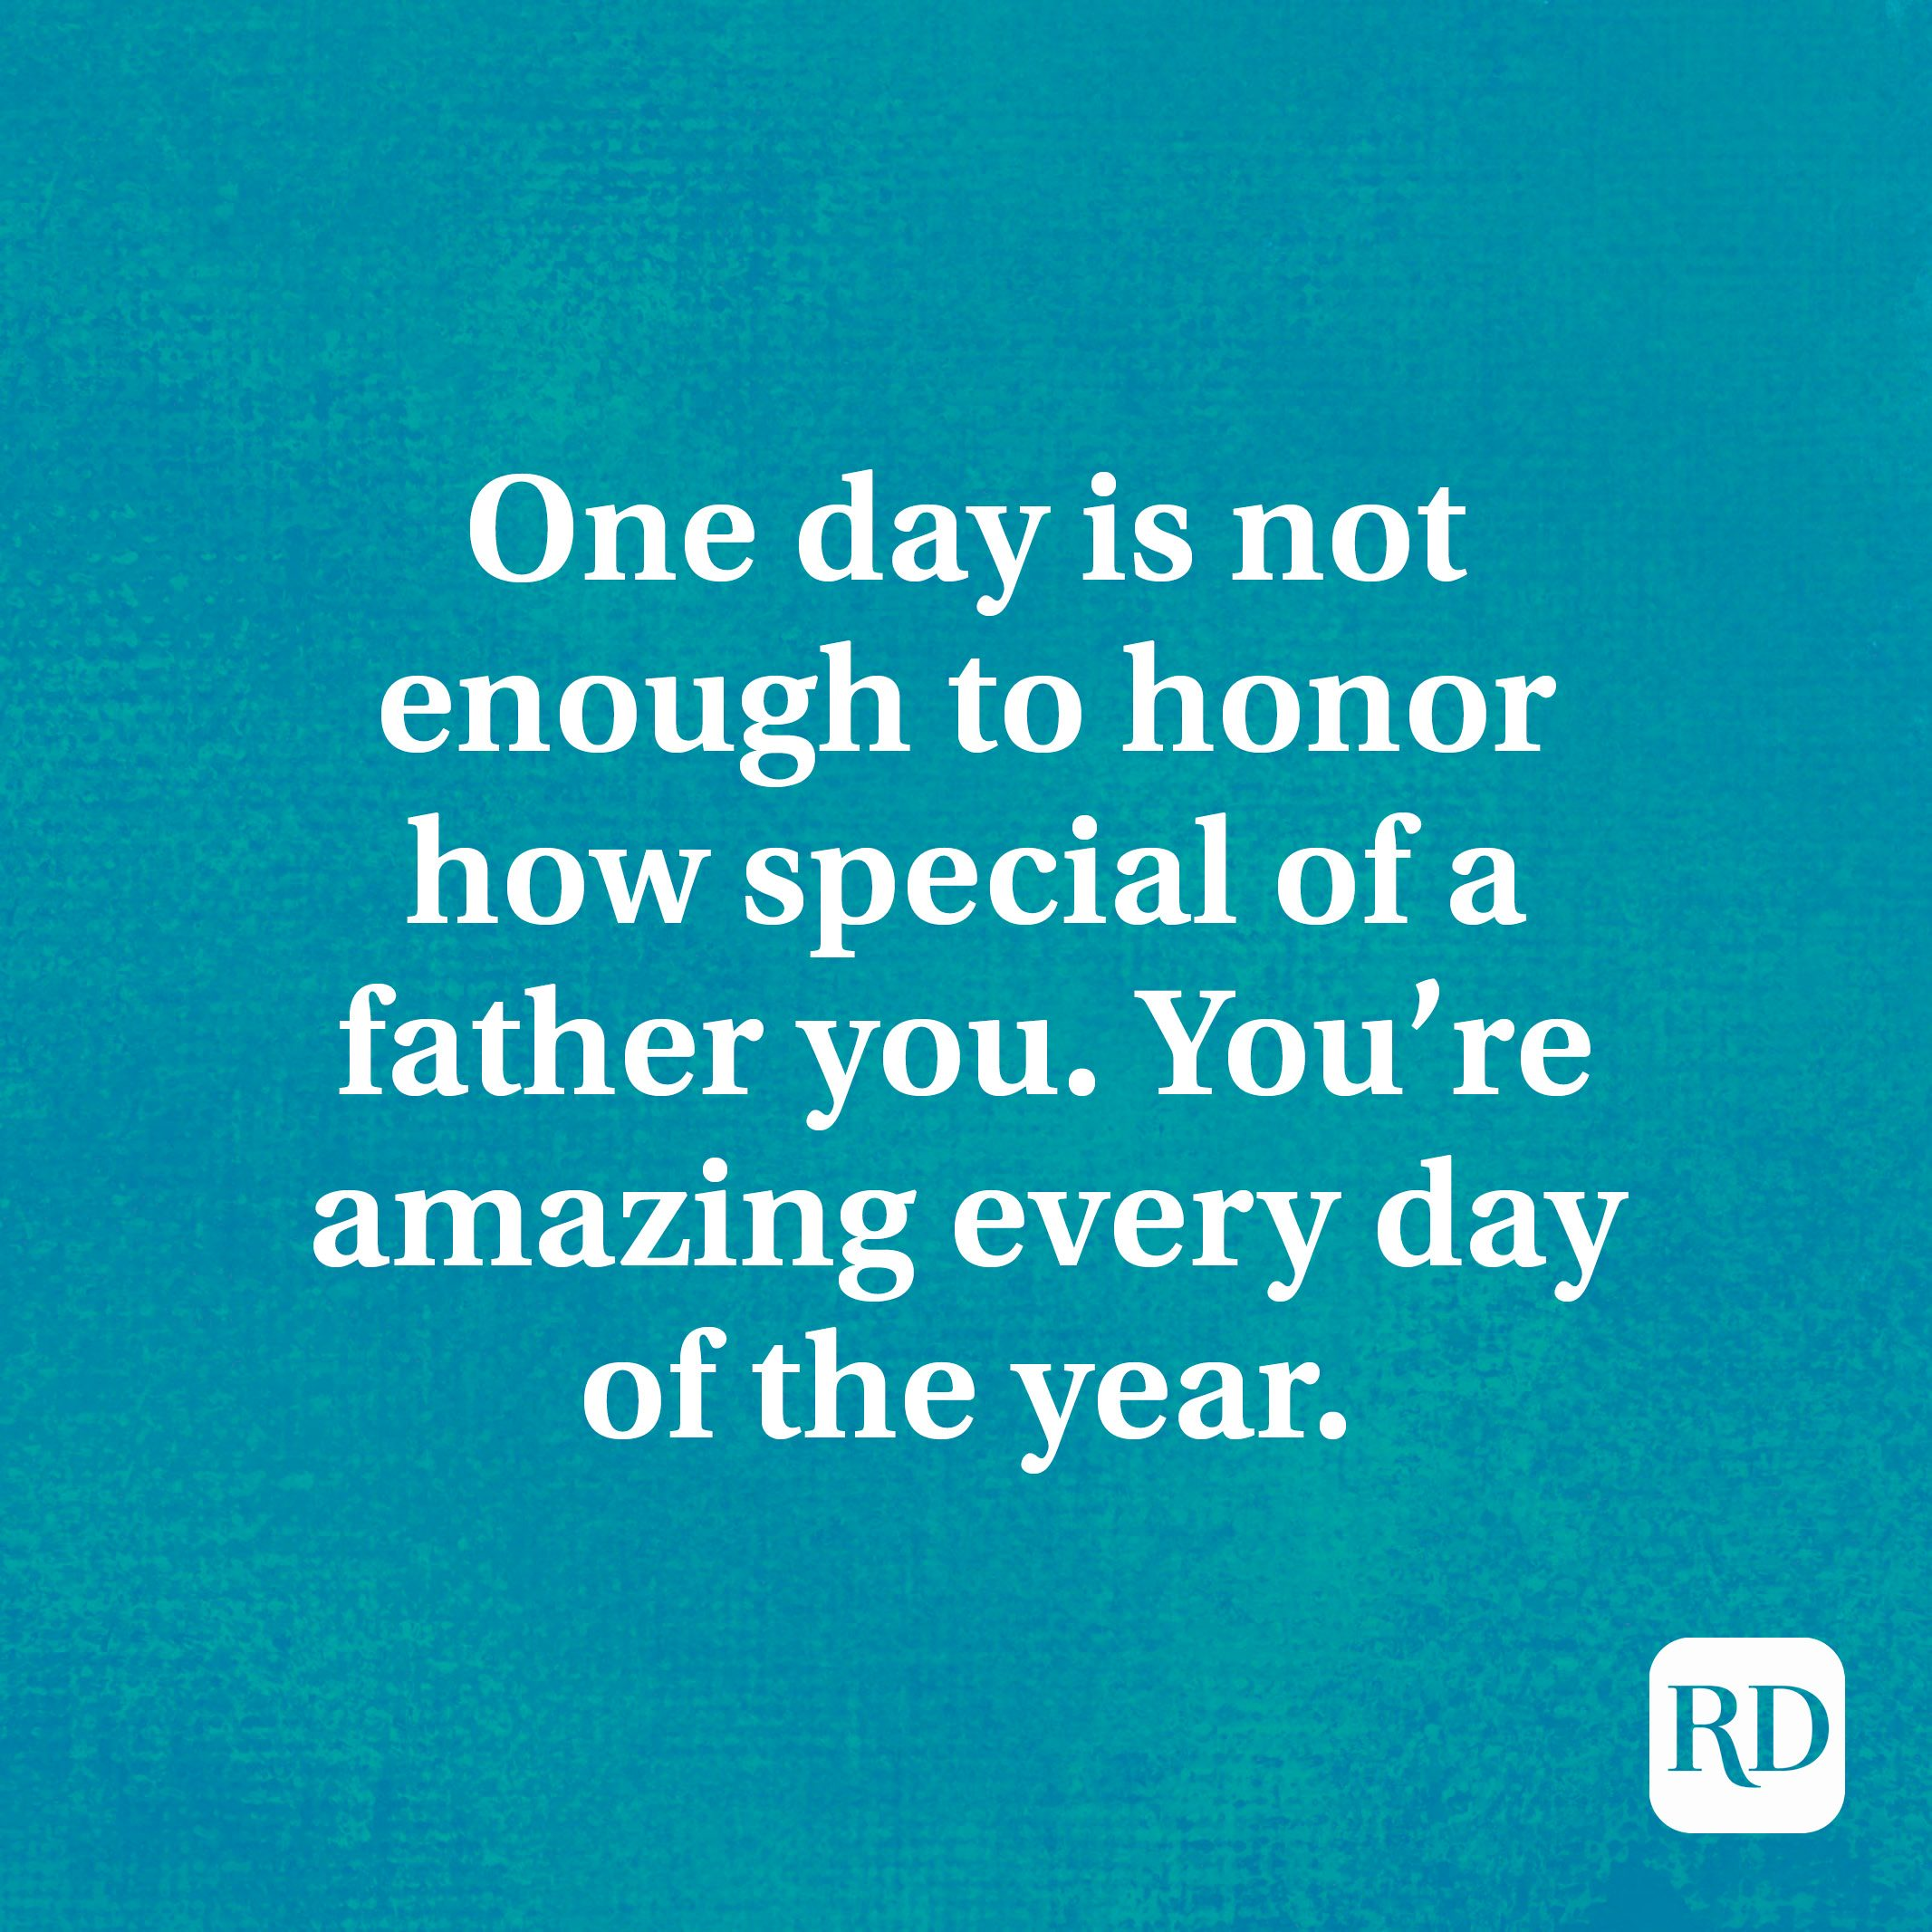 One day is not enough to honor how special of a father you. You're amazing every day of the year.